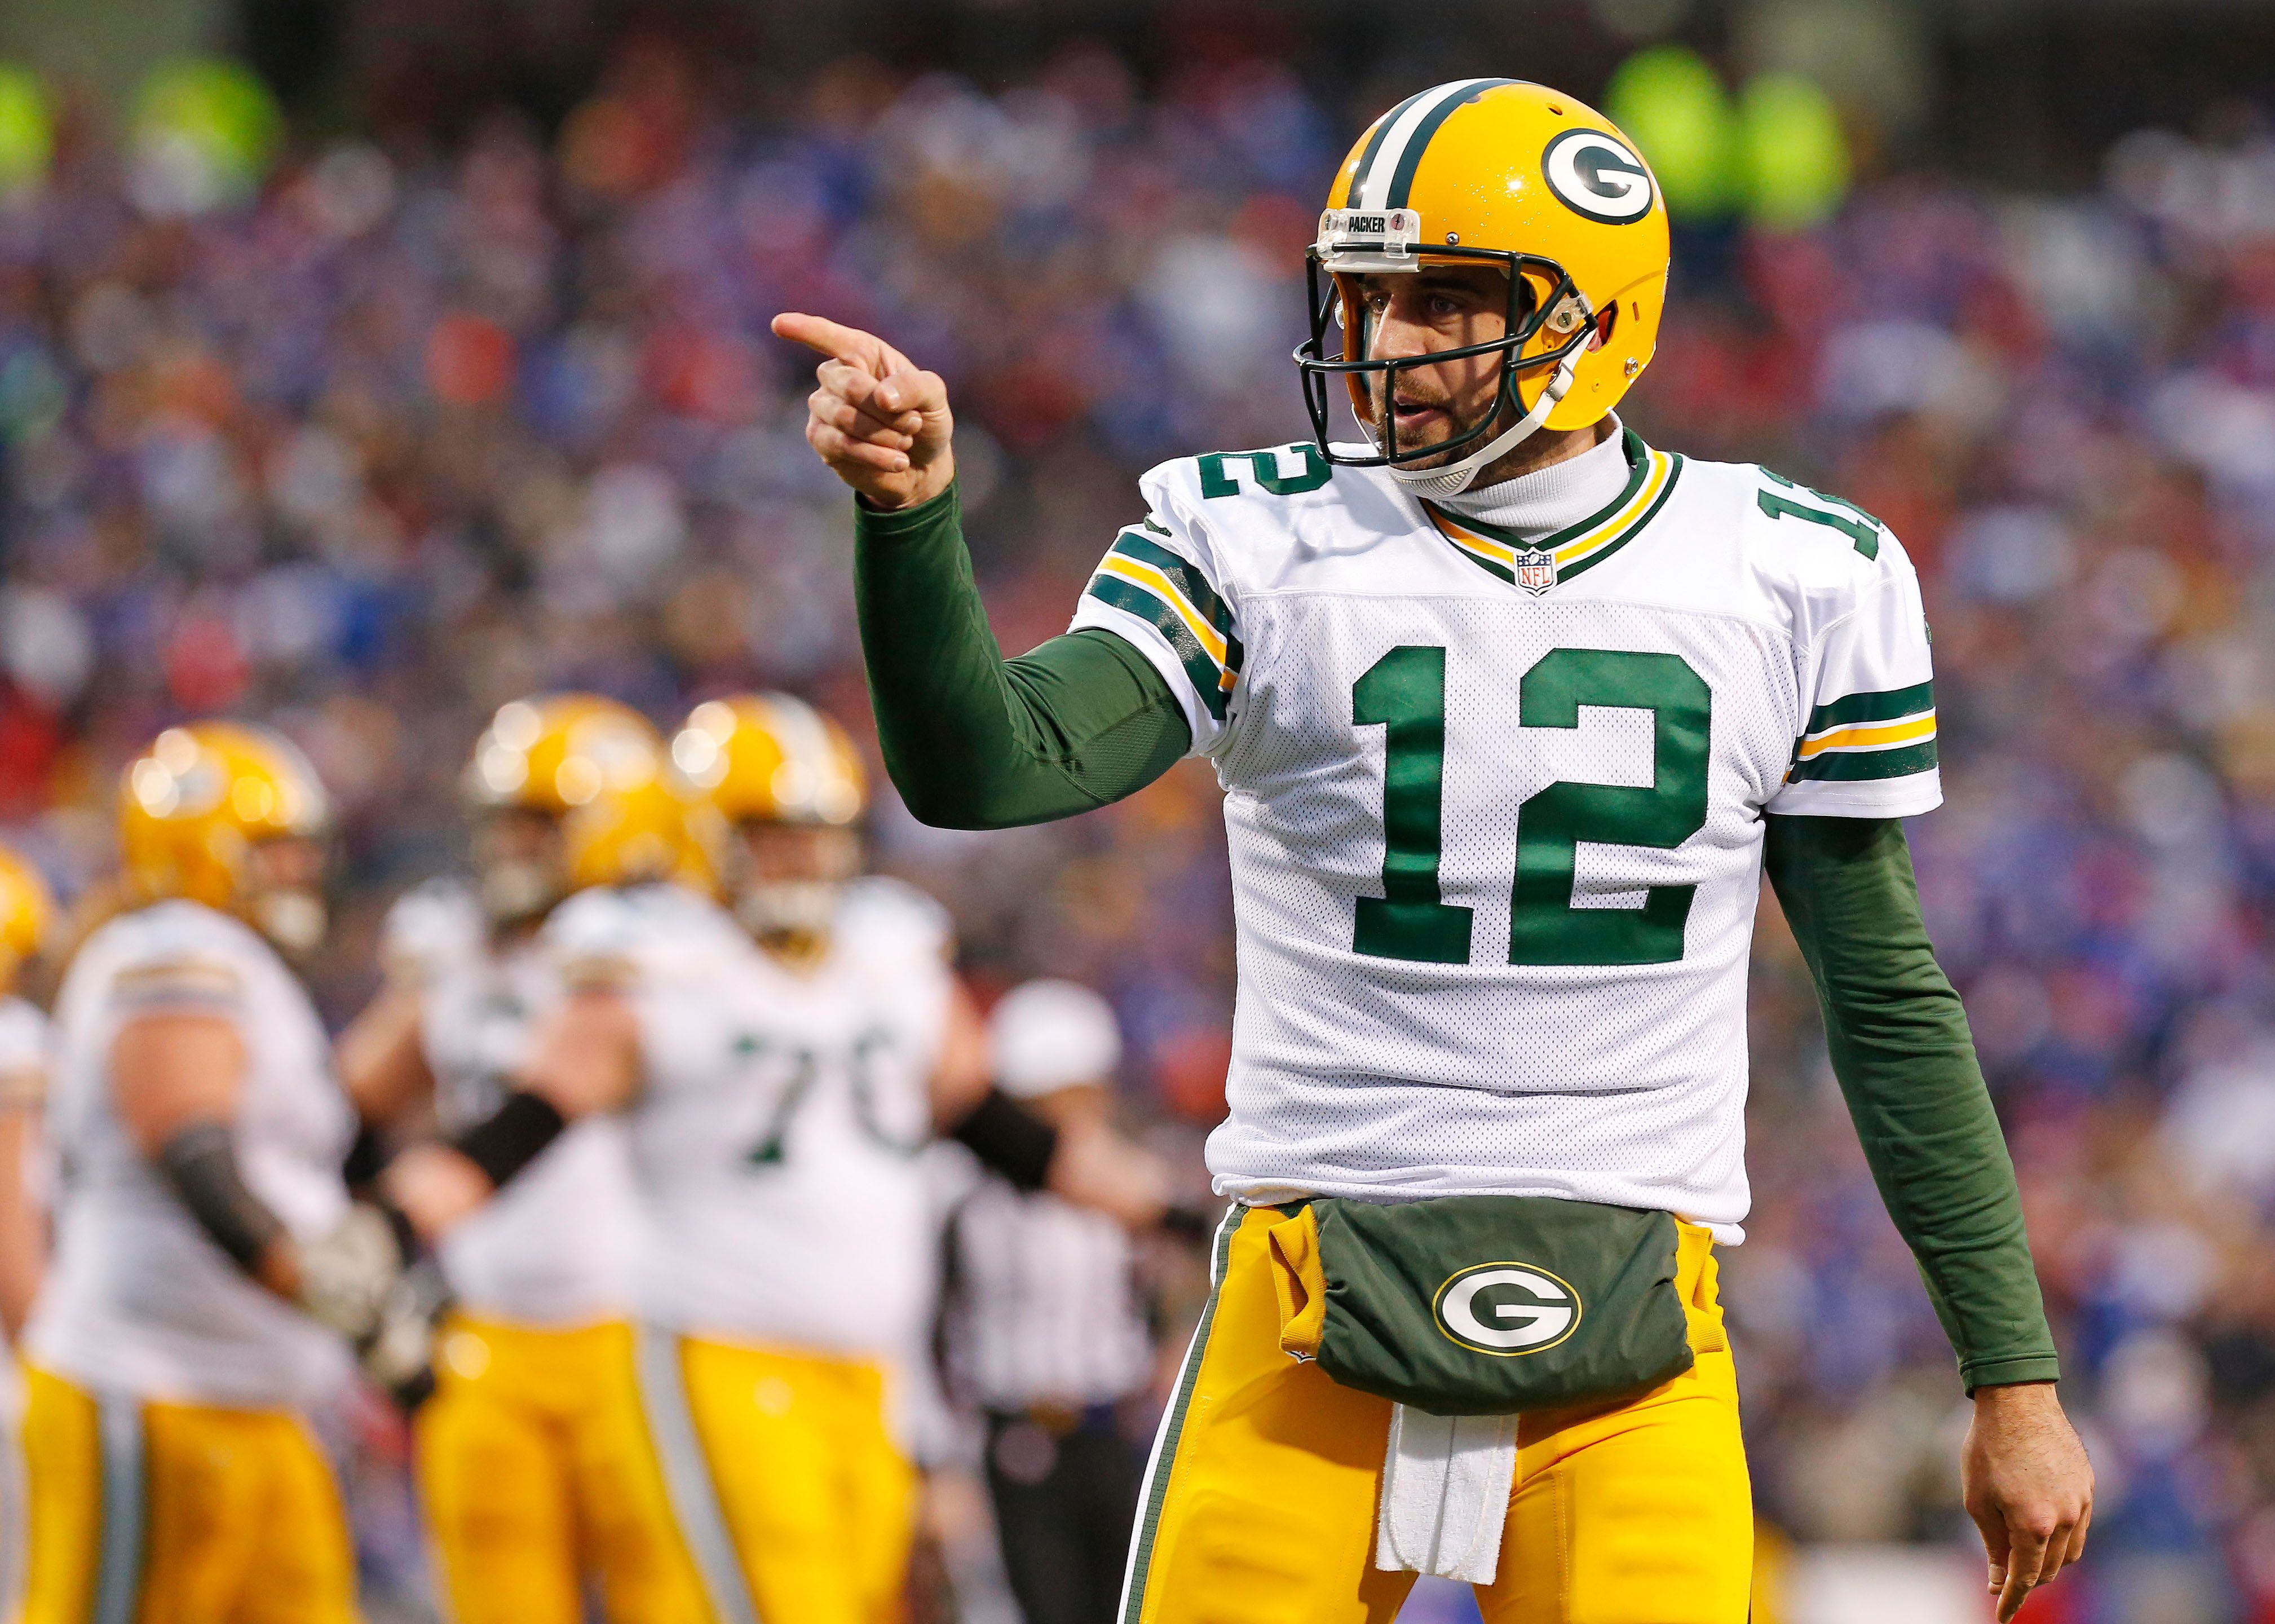 Pin By Qam Yasharahla On Pop Culture More Nfl Aaron Rodgers Nfl Season